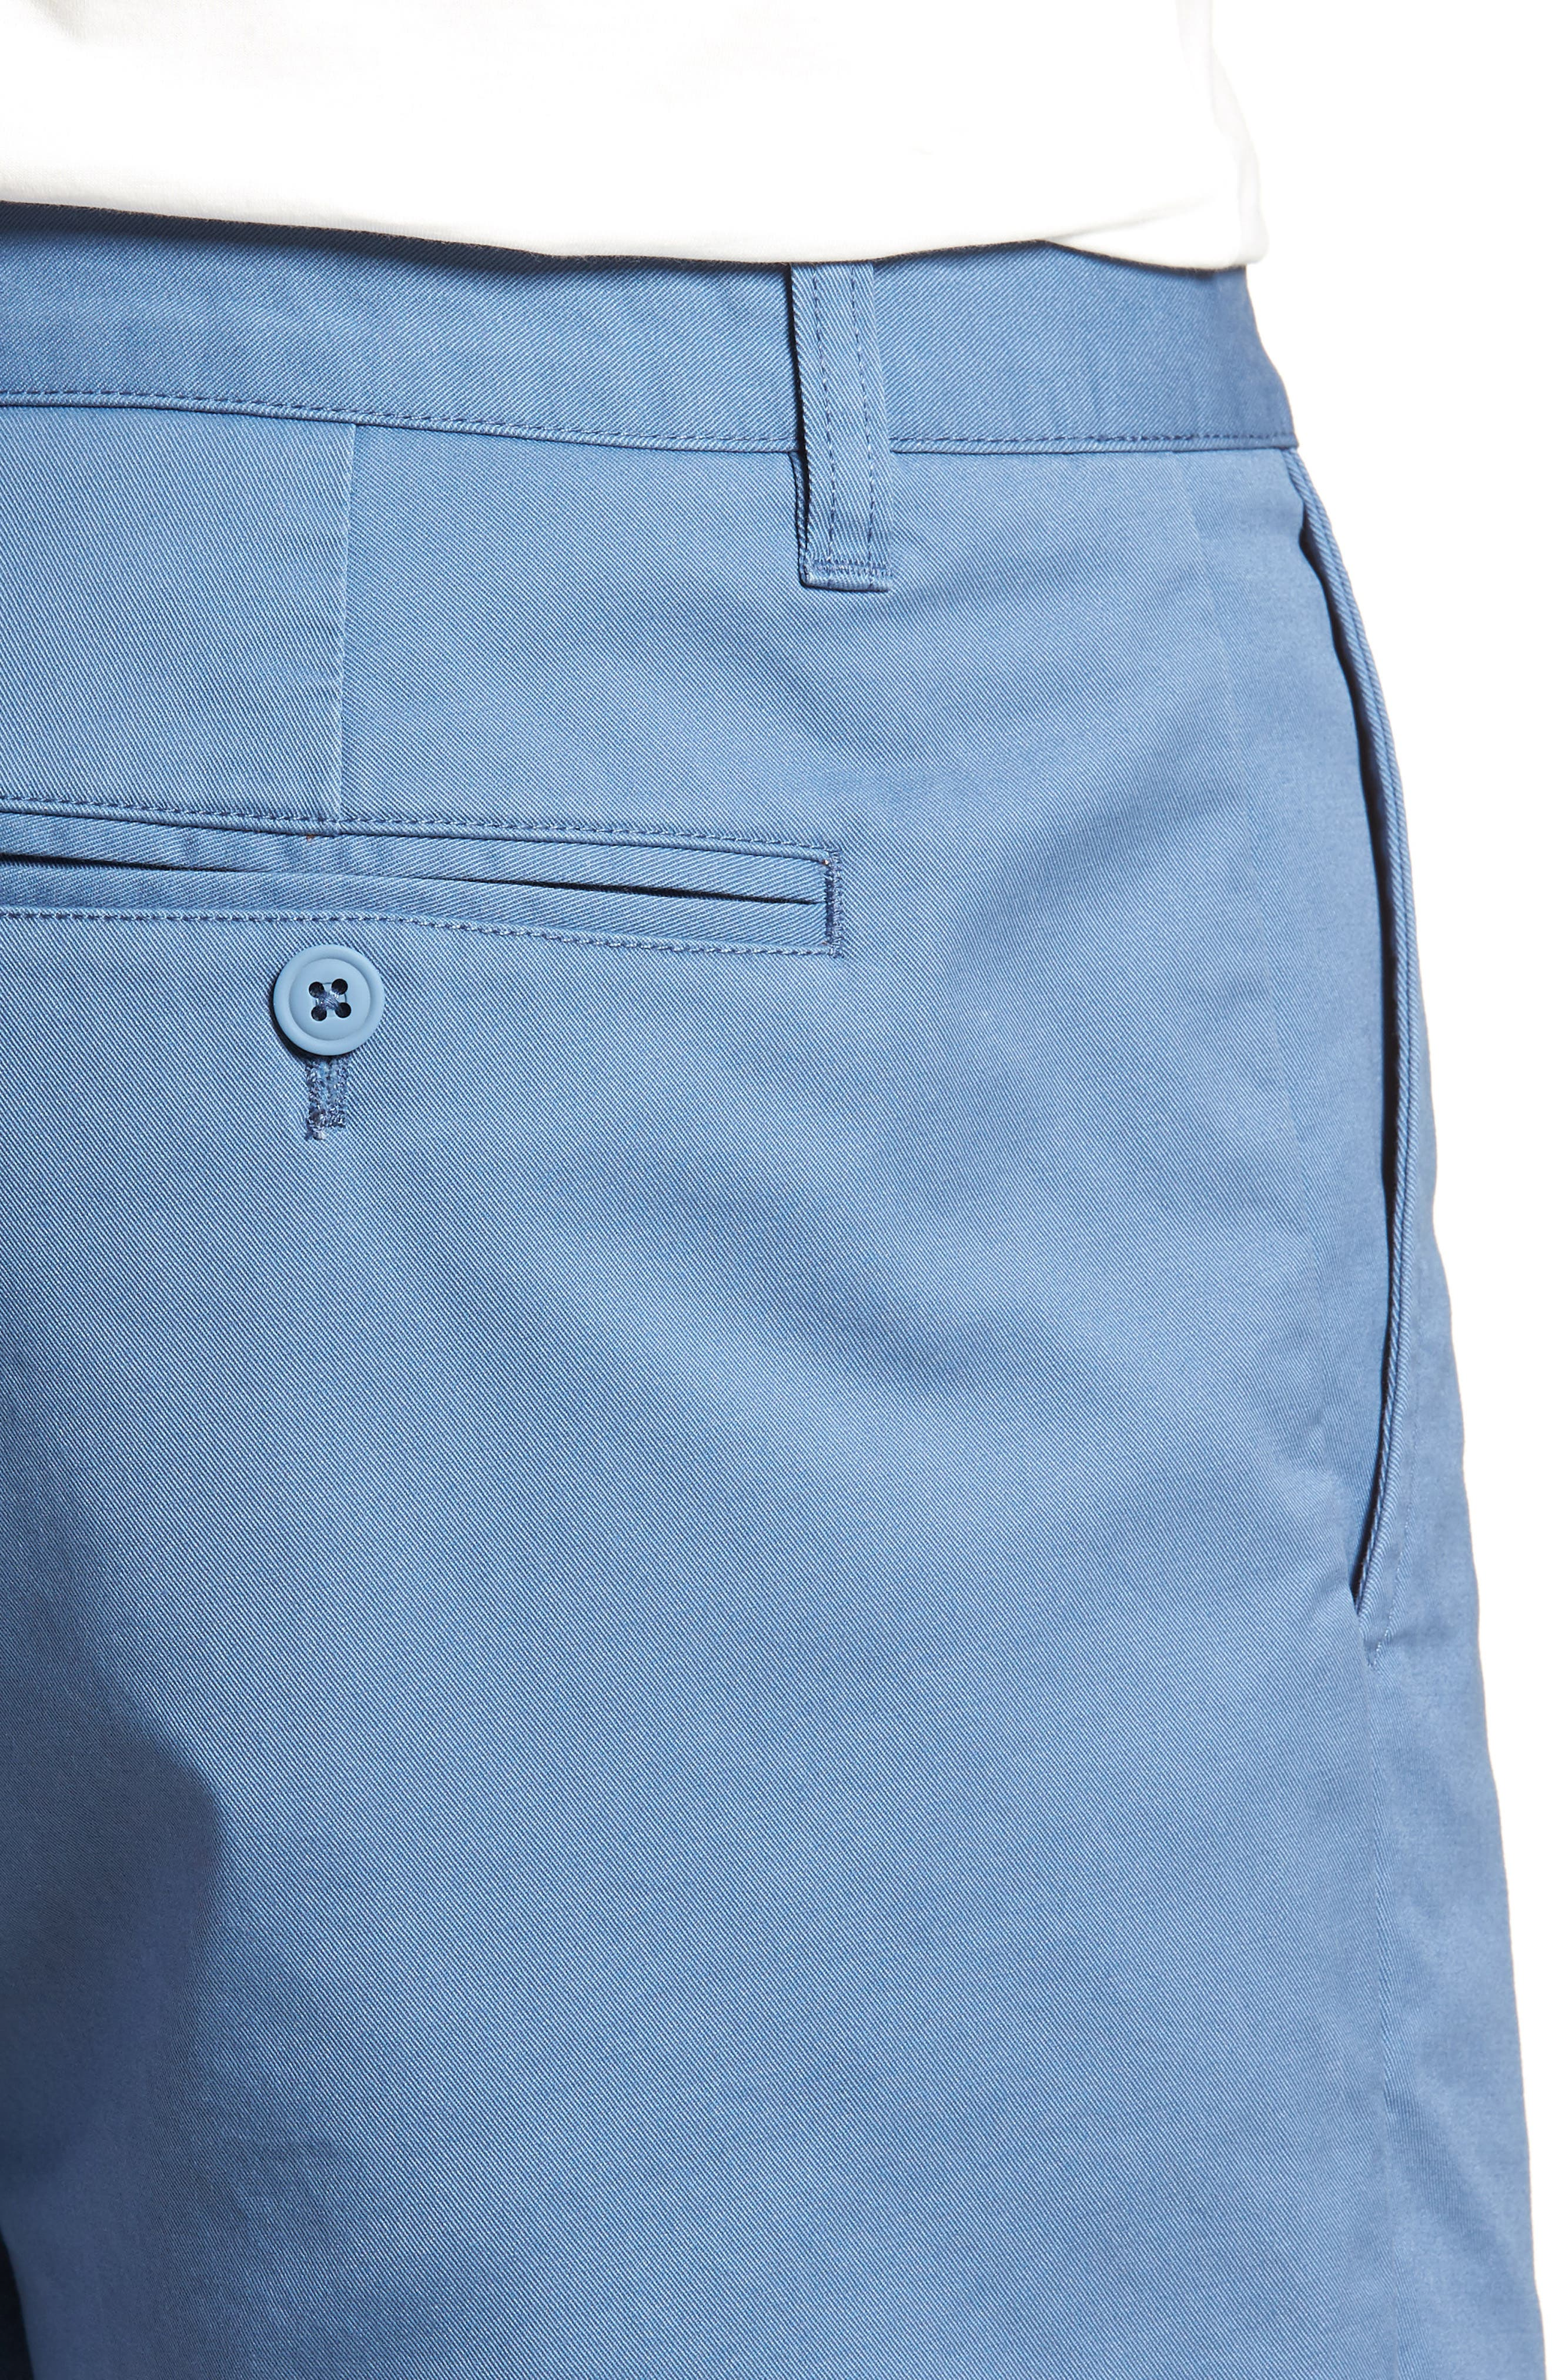 Stretch Washed Chino 5-Inch Shorts,                             Alternate thumbnail 98, color,